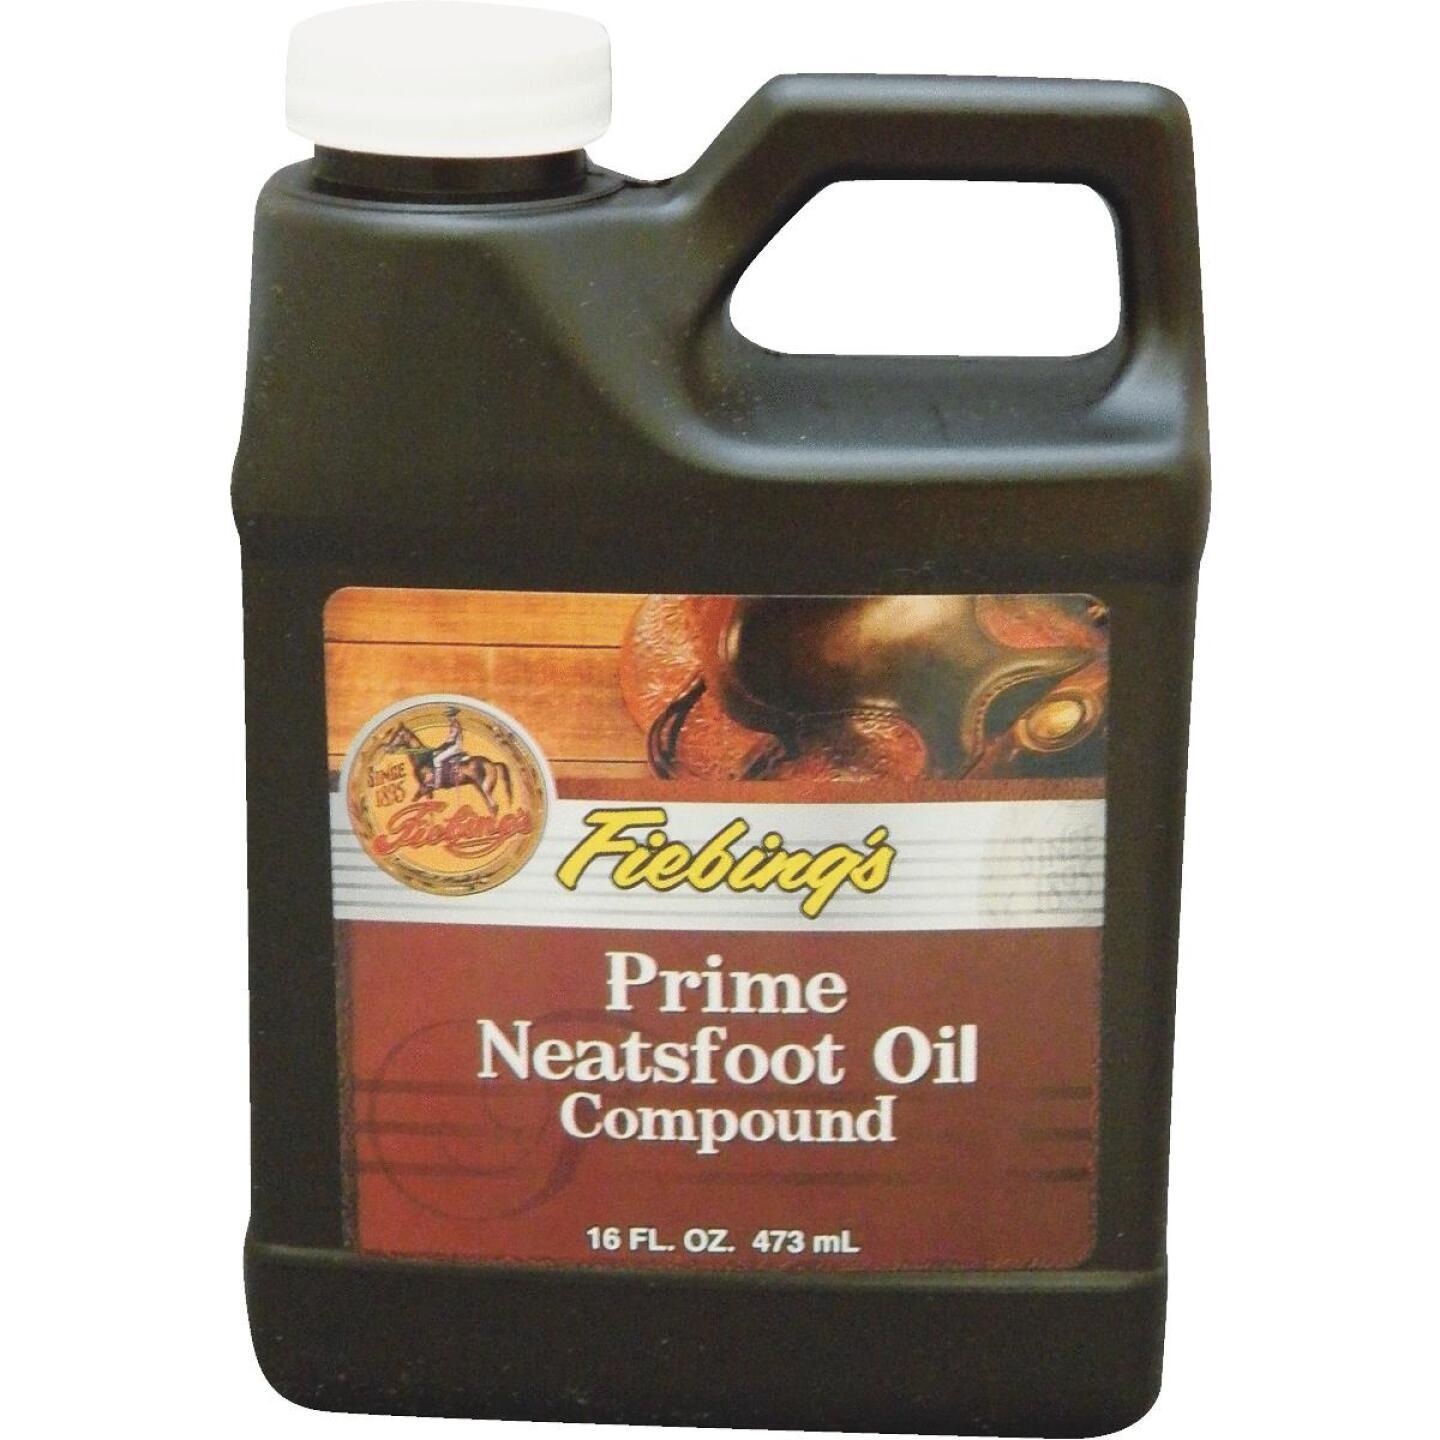 Fiebing's 16 Oz. Prime Neatsfoot Oil Compound Image 1